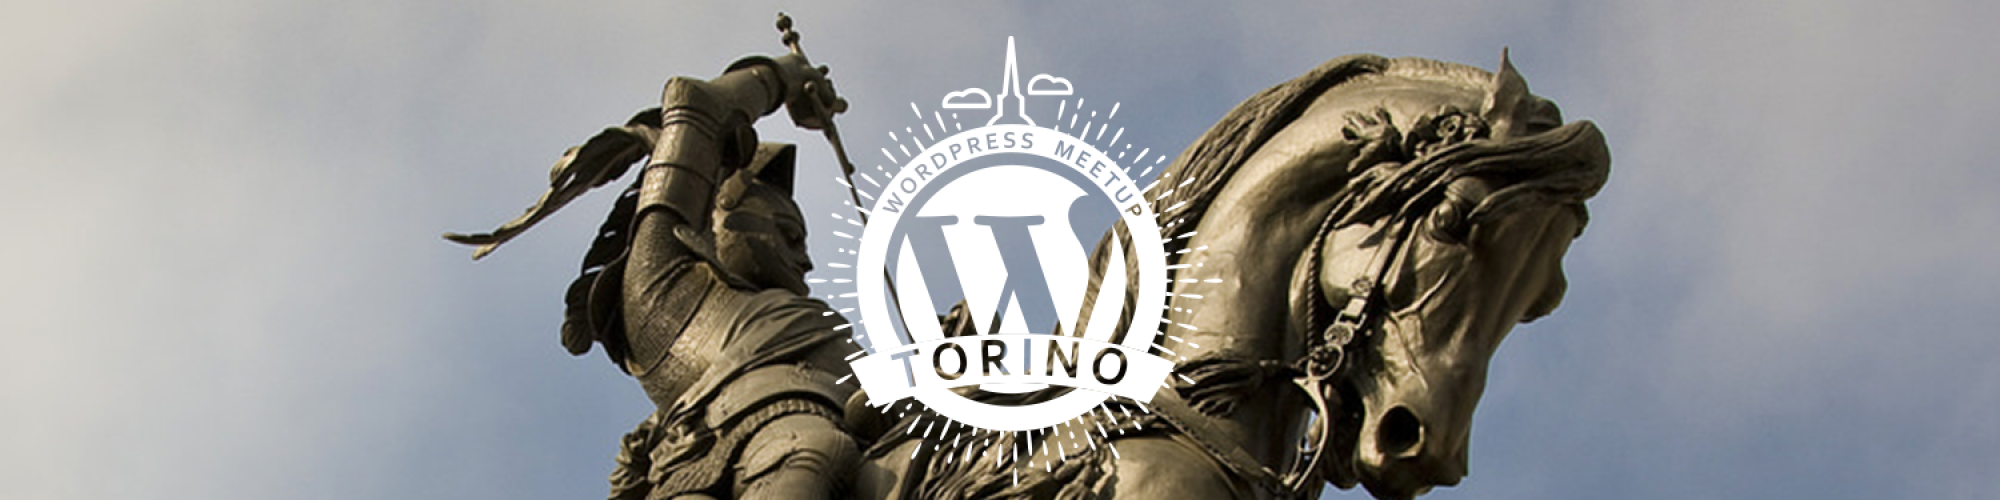 WordPress Meetup Torino Cover